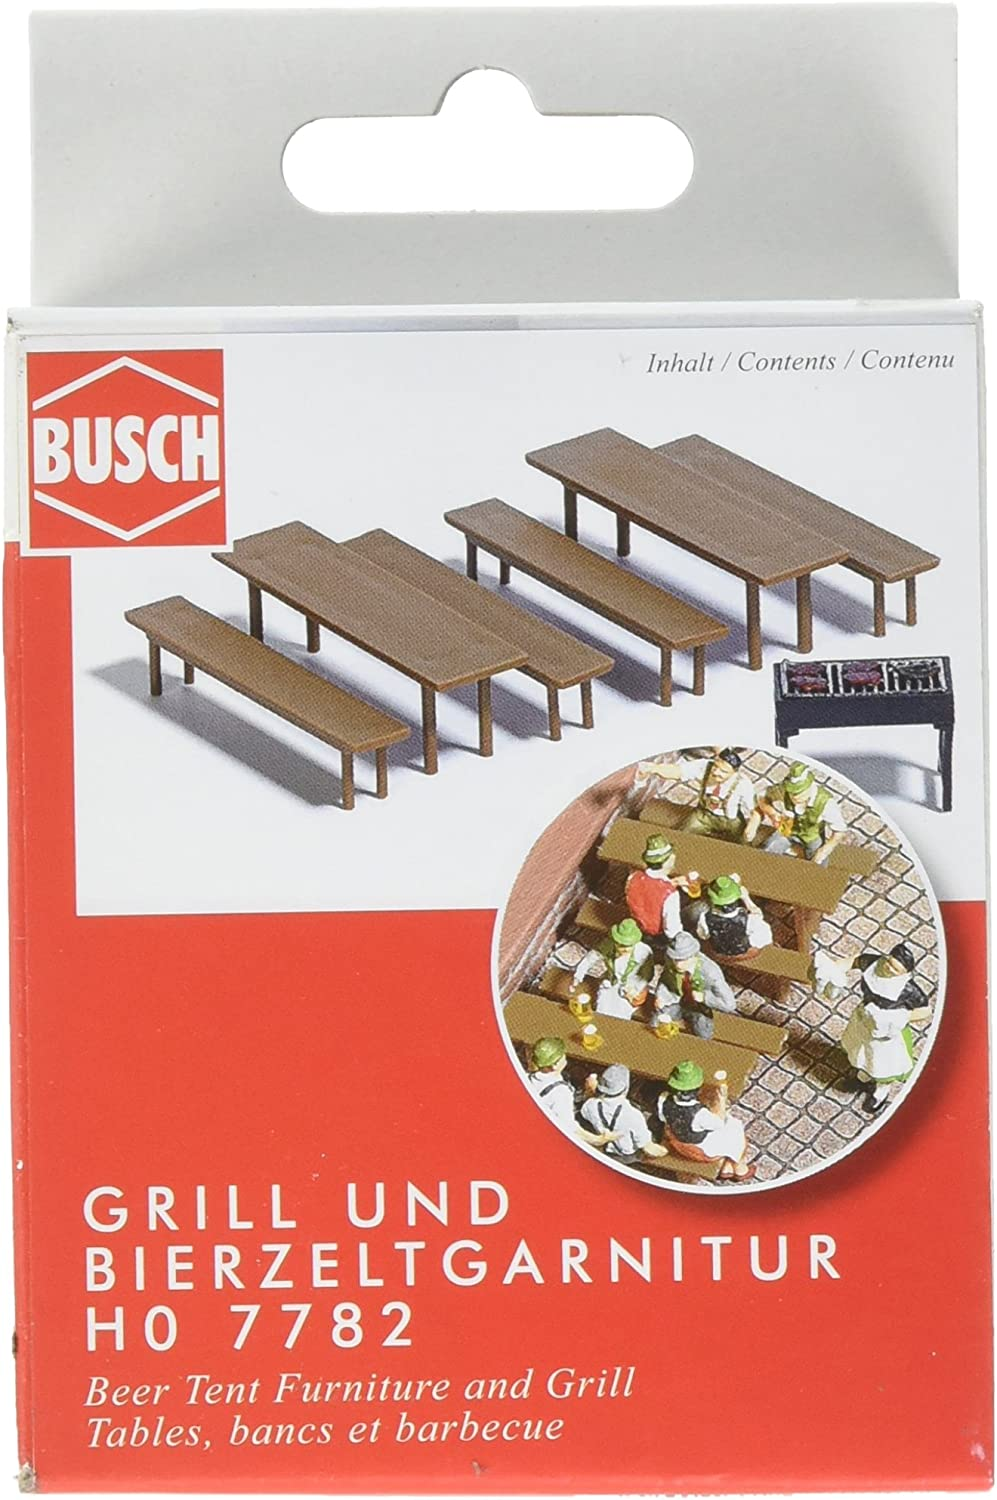 Busch 7782 Beer Tent Furniture/Grill HO Scenery Scale Model Scenery